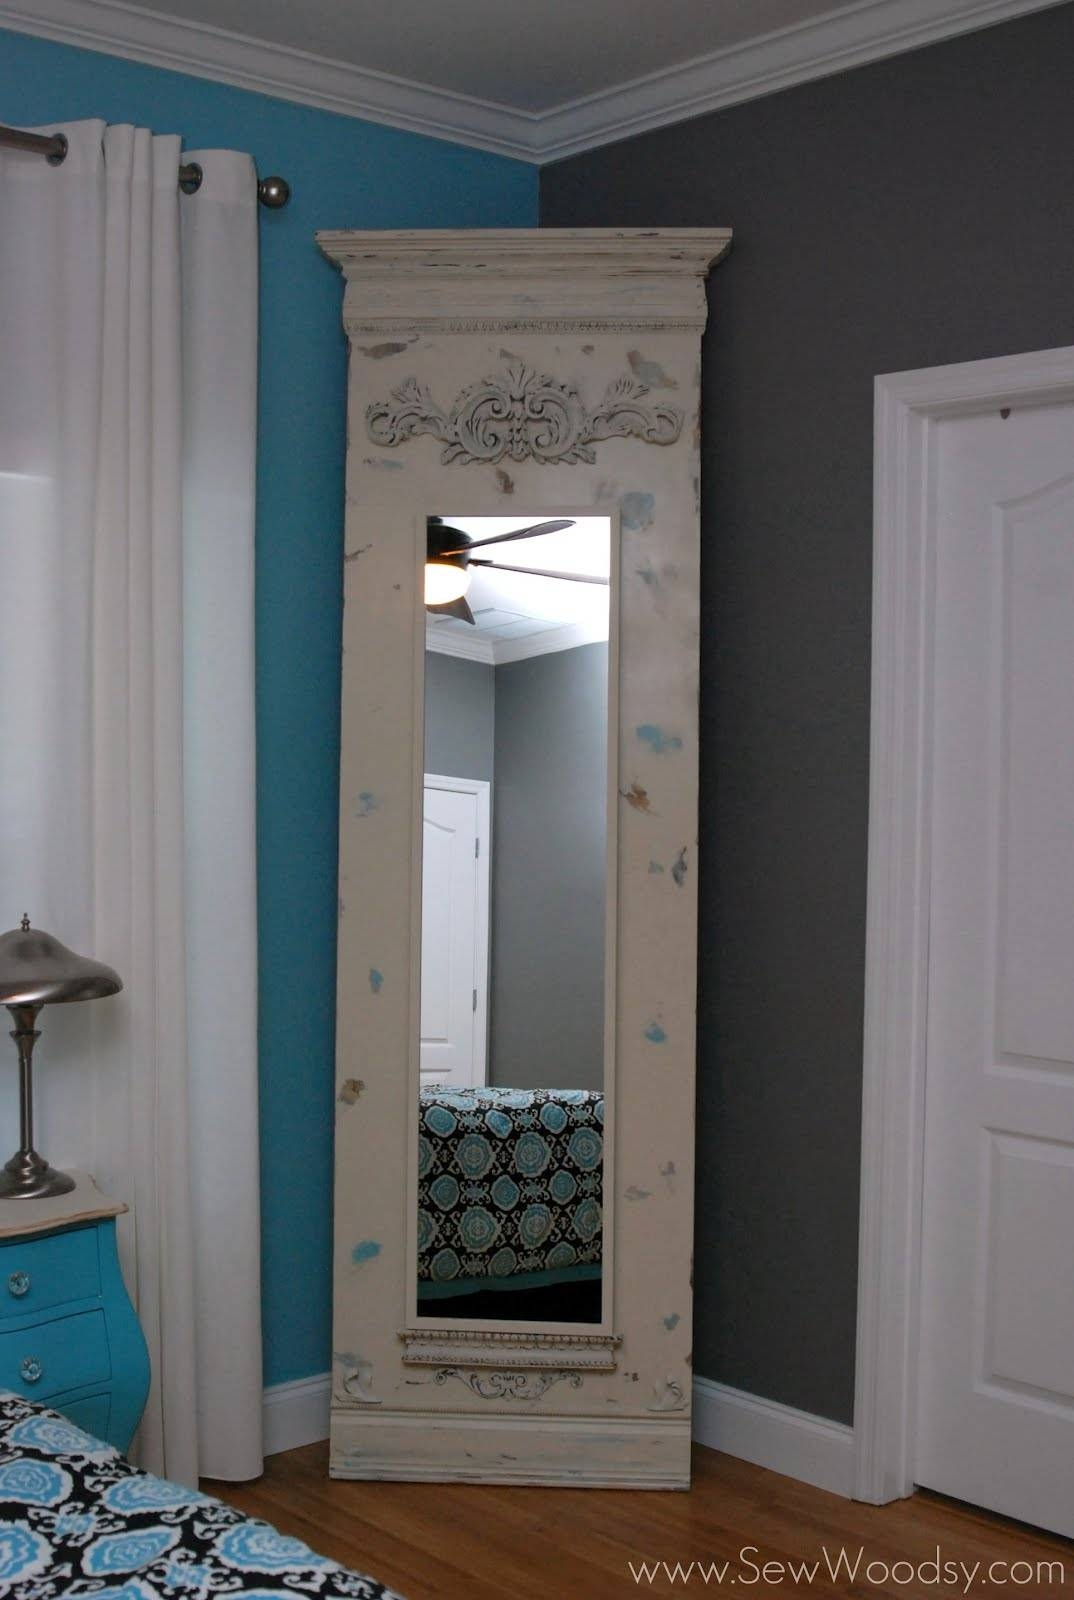 Vintage Bedroom With Trumeau Floor Mirror Ikea Stave Mirror, And within Chrome Floor Mirrors (Image 23 of 25)